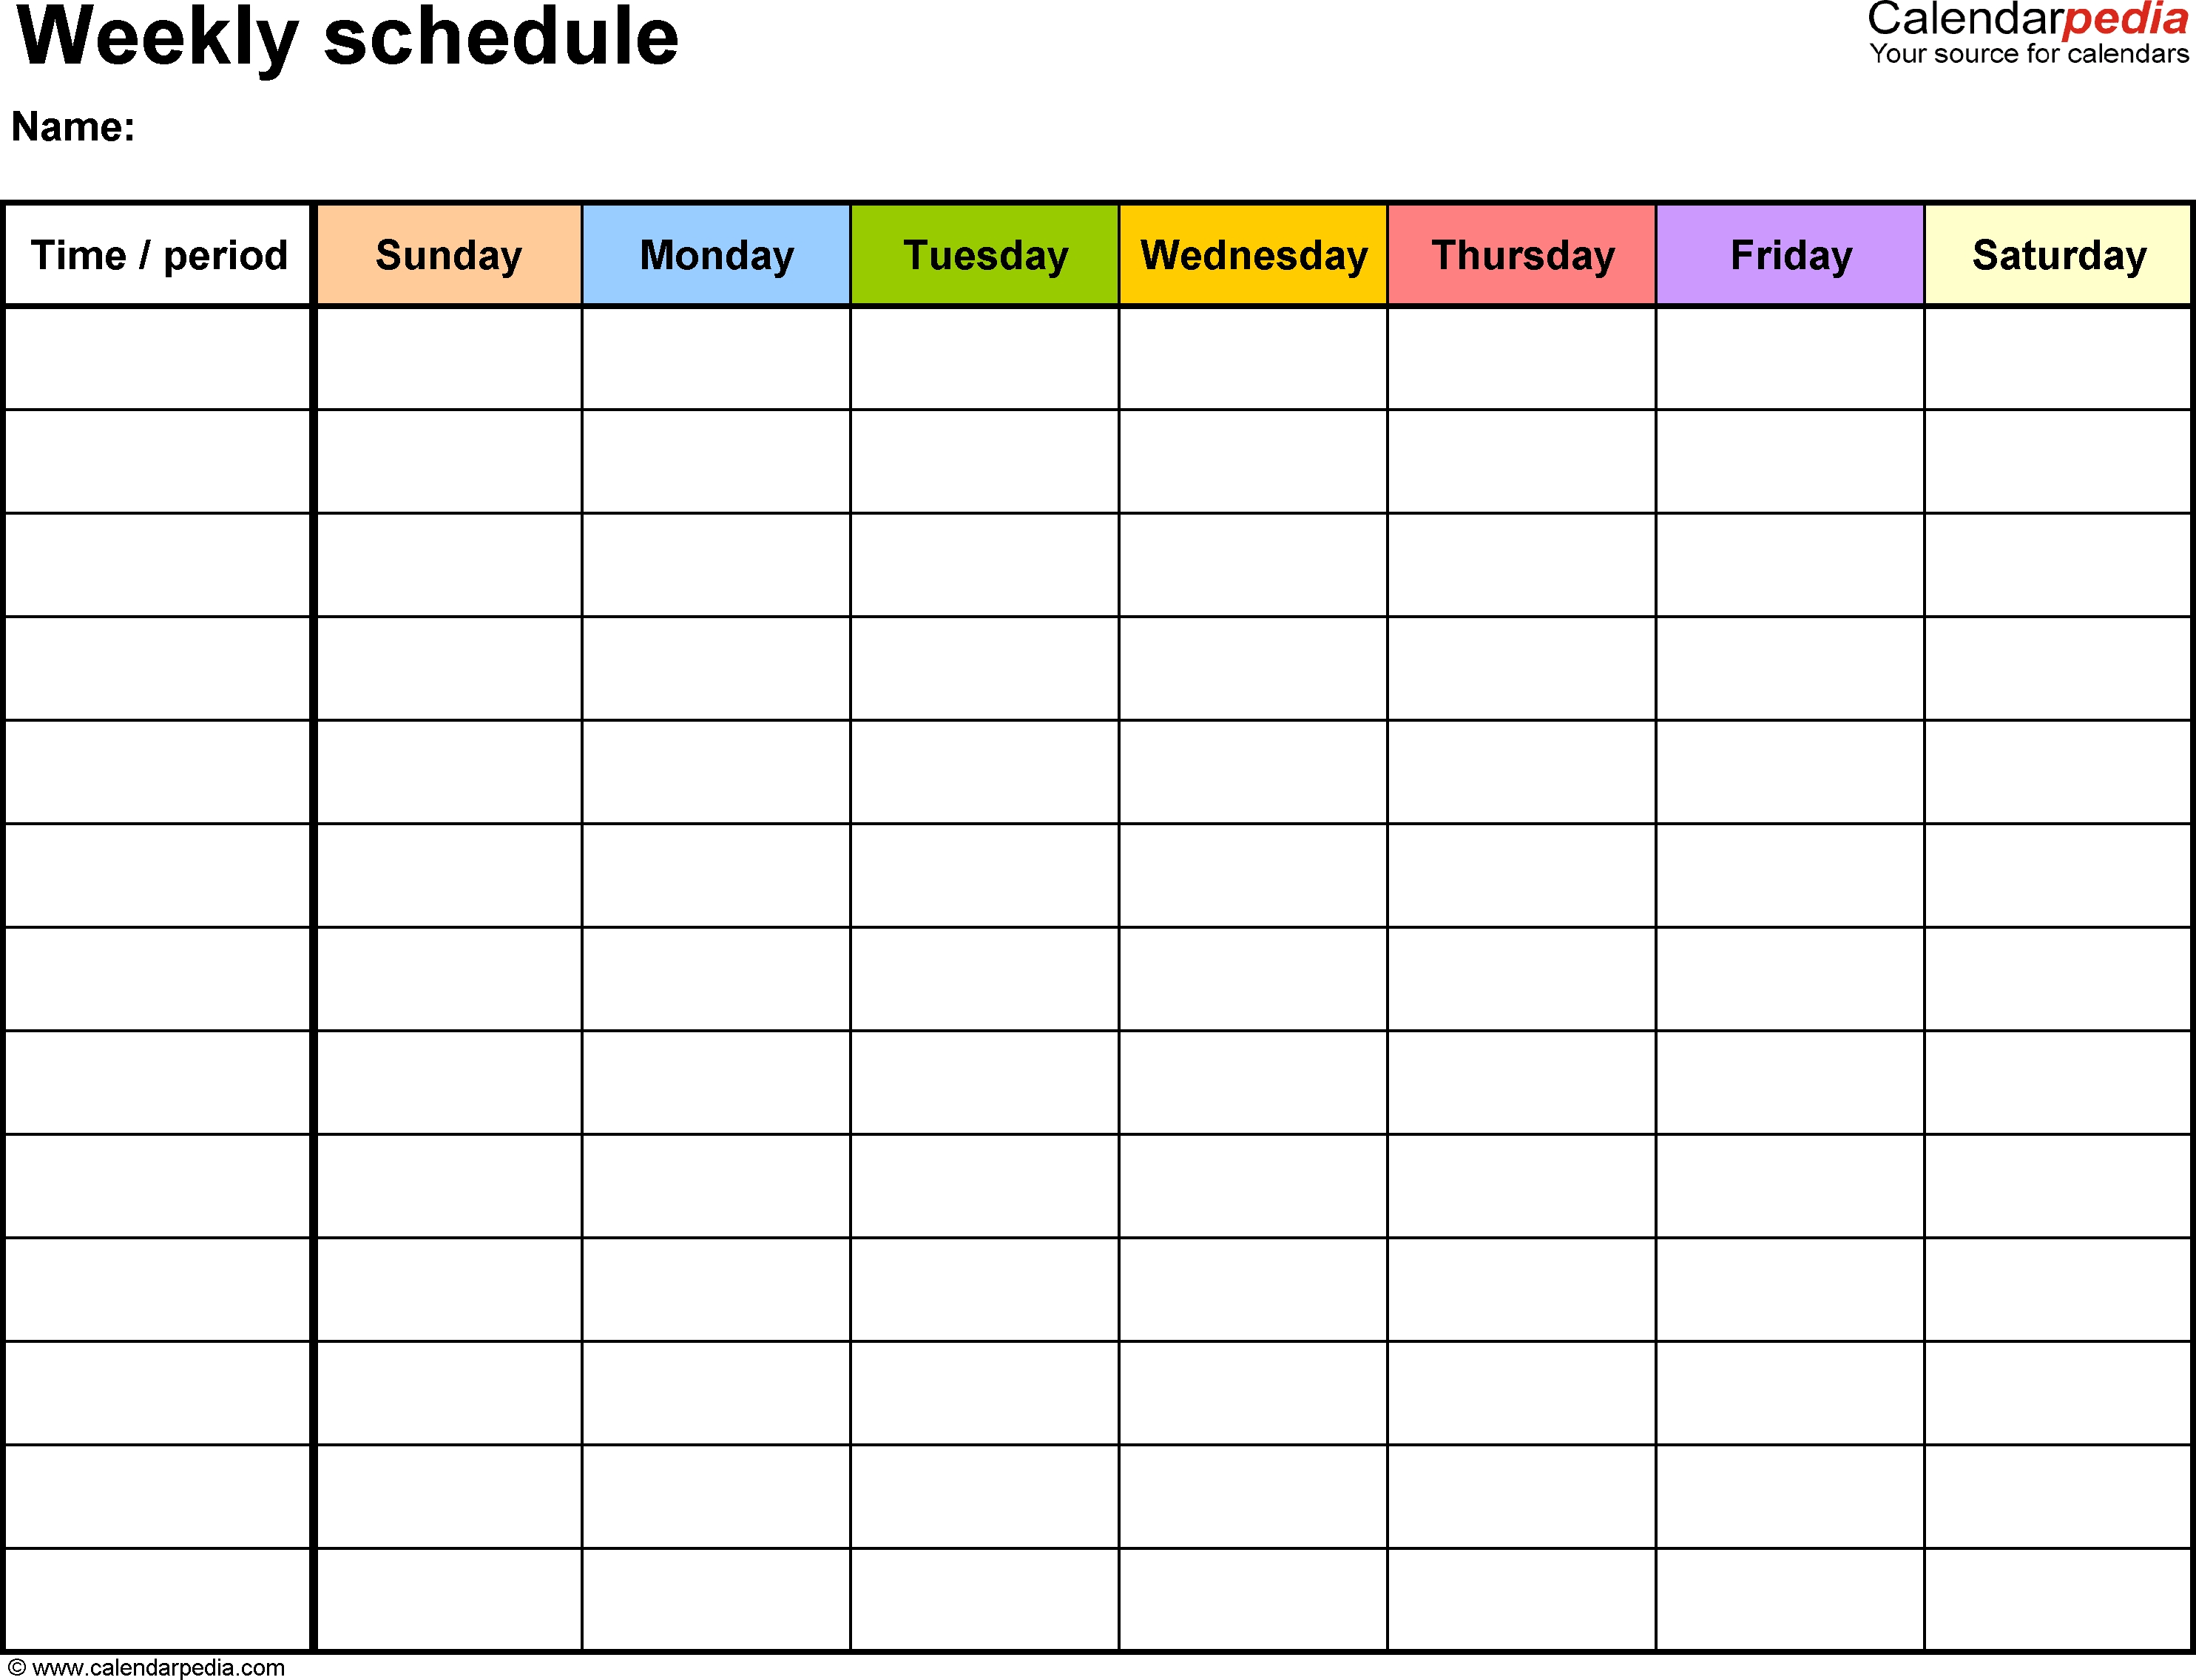 Free Weekly Schedule Templates For Excel - 18 Templates | ~Yoga in Blank Weekly Schedule Template Printable